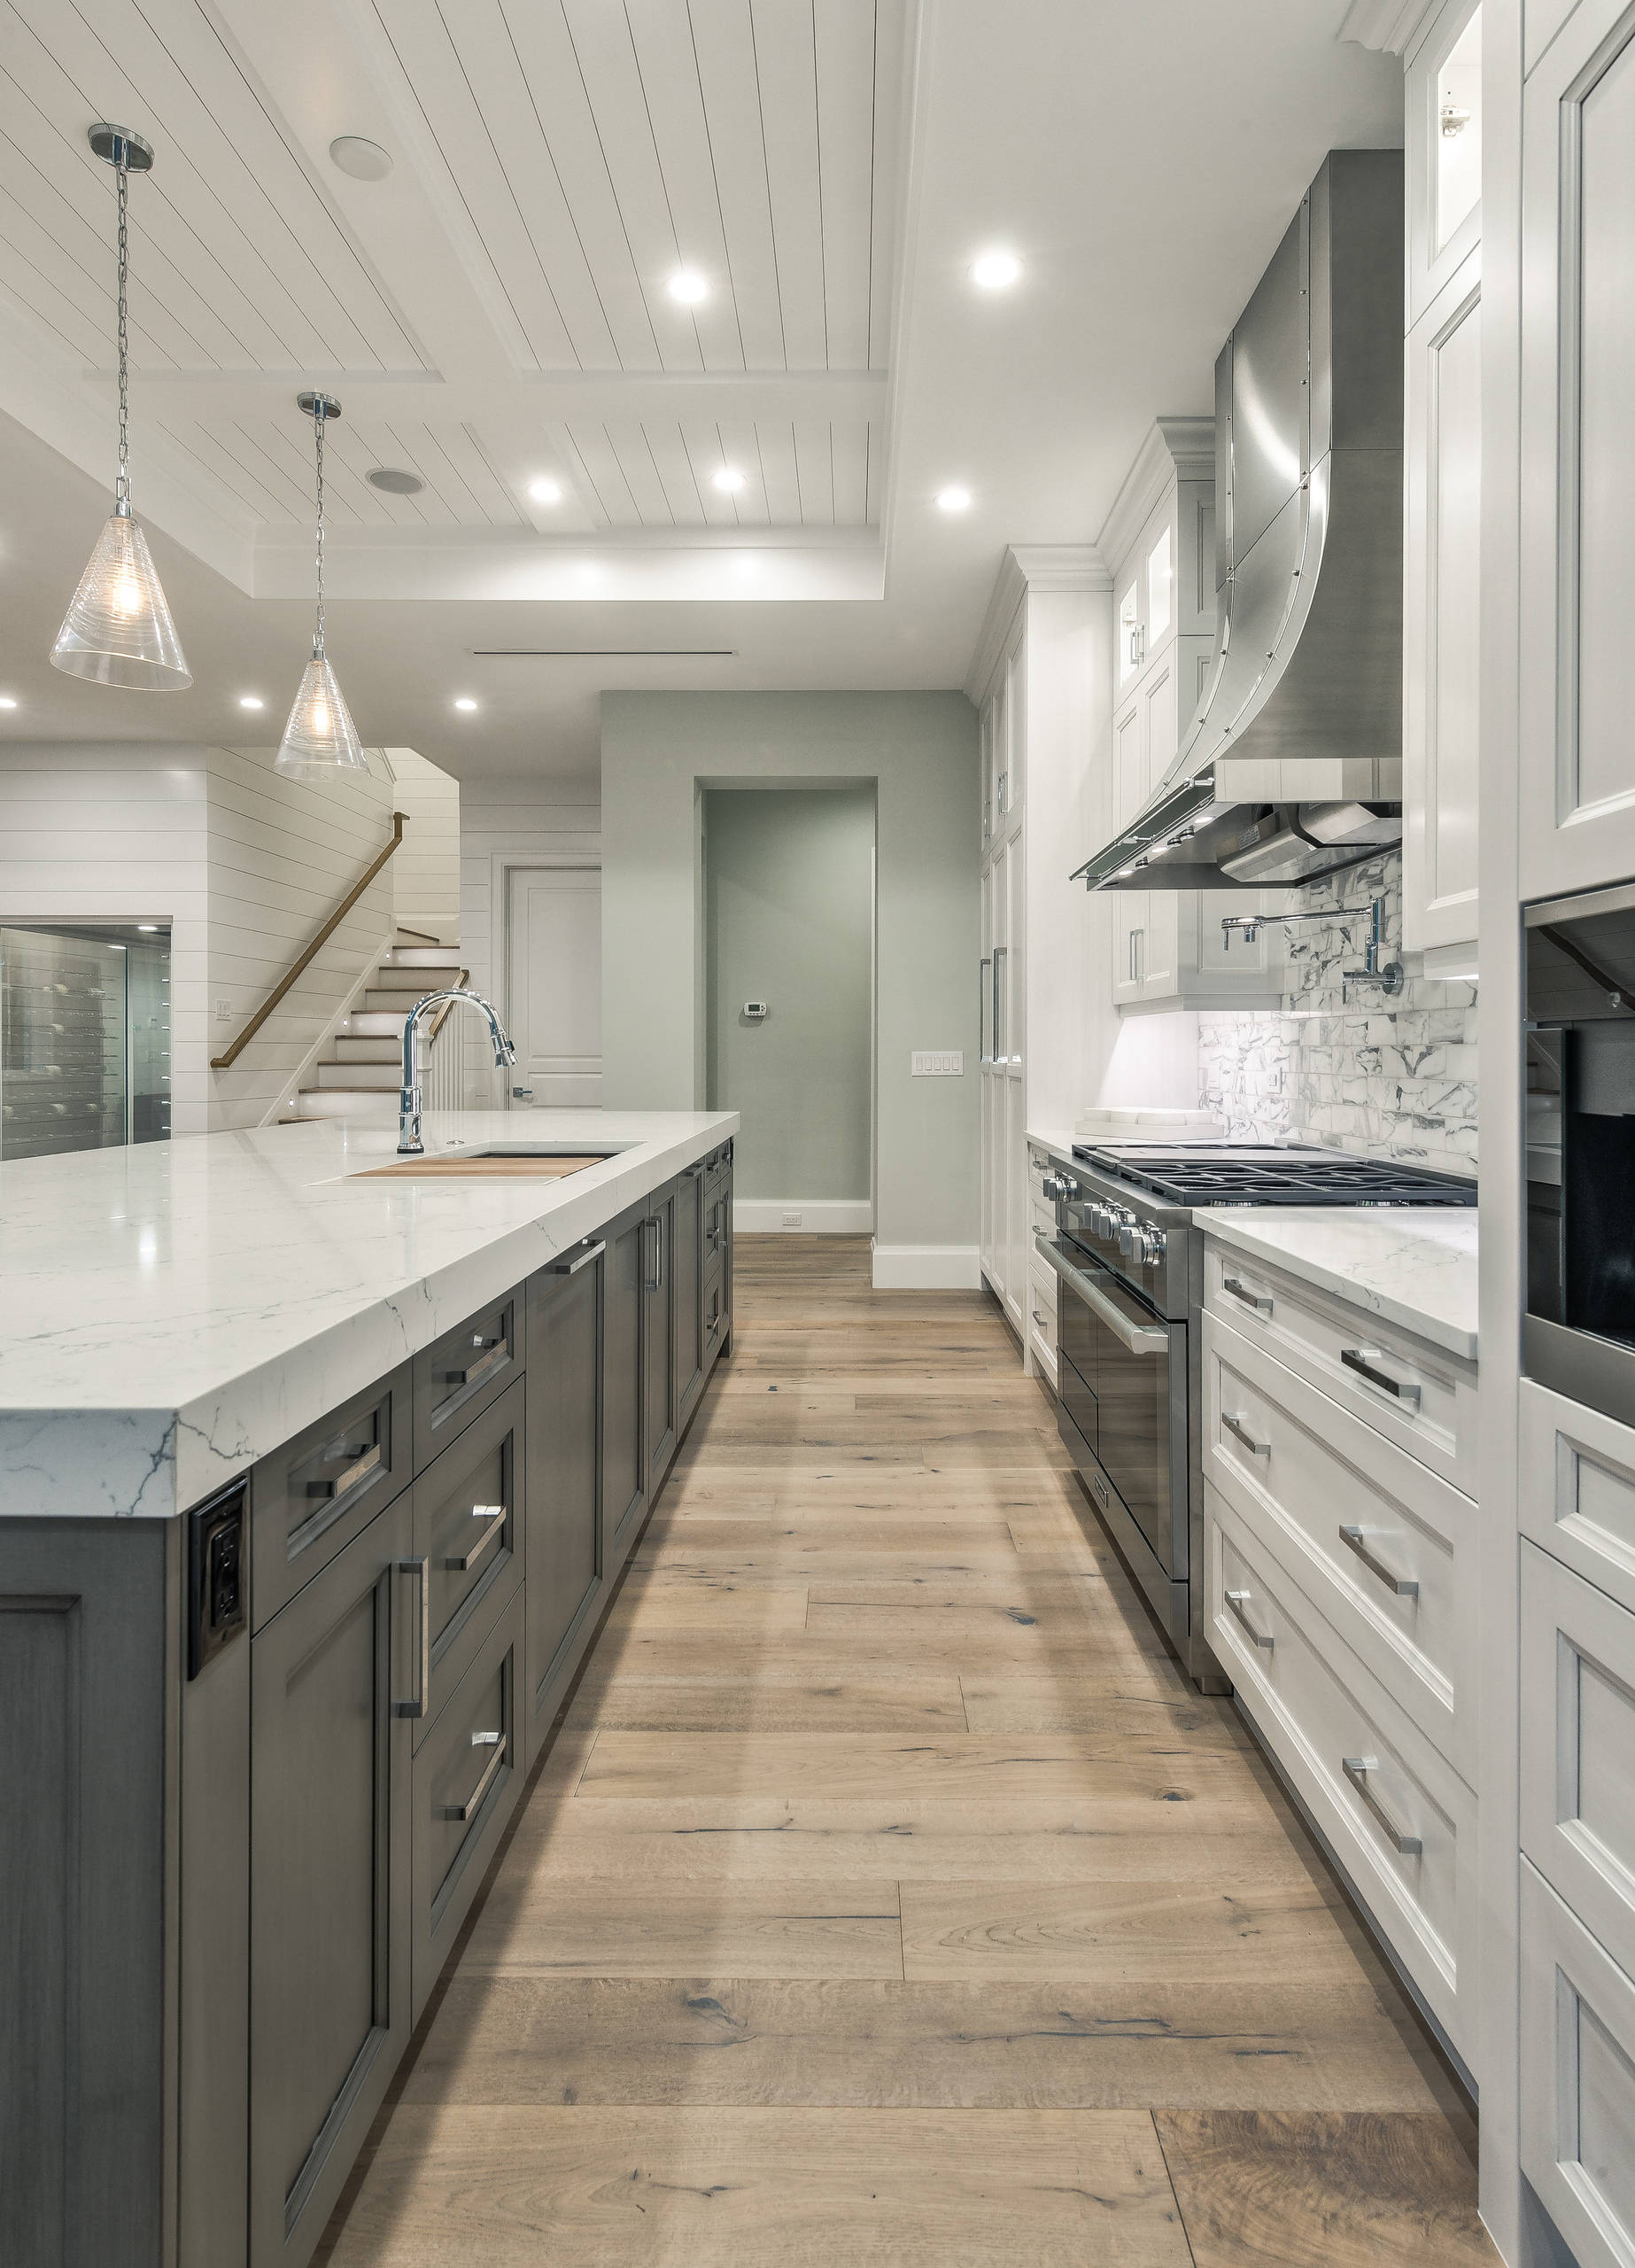 75 Beautiful Modern Kitchen Pictures Ideas November 2020 Houzz